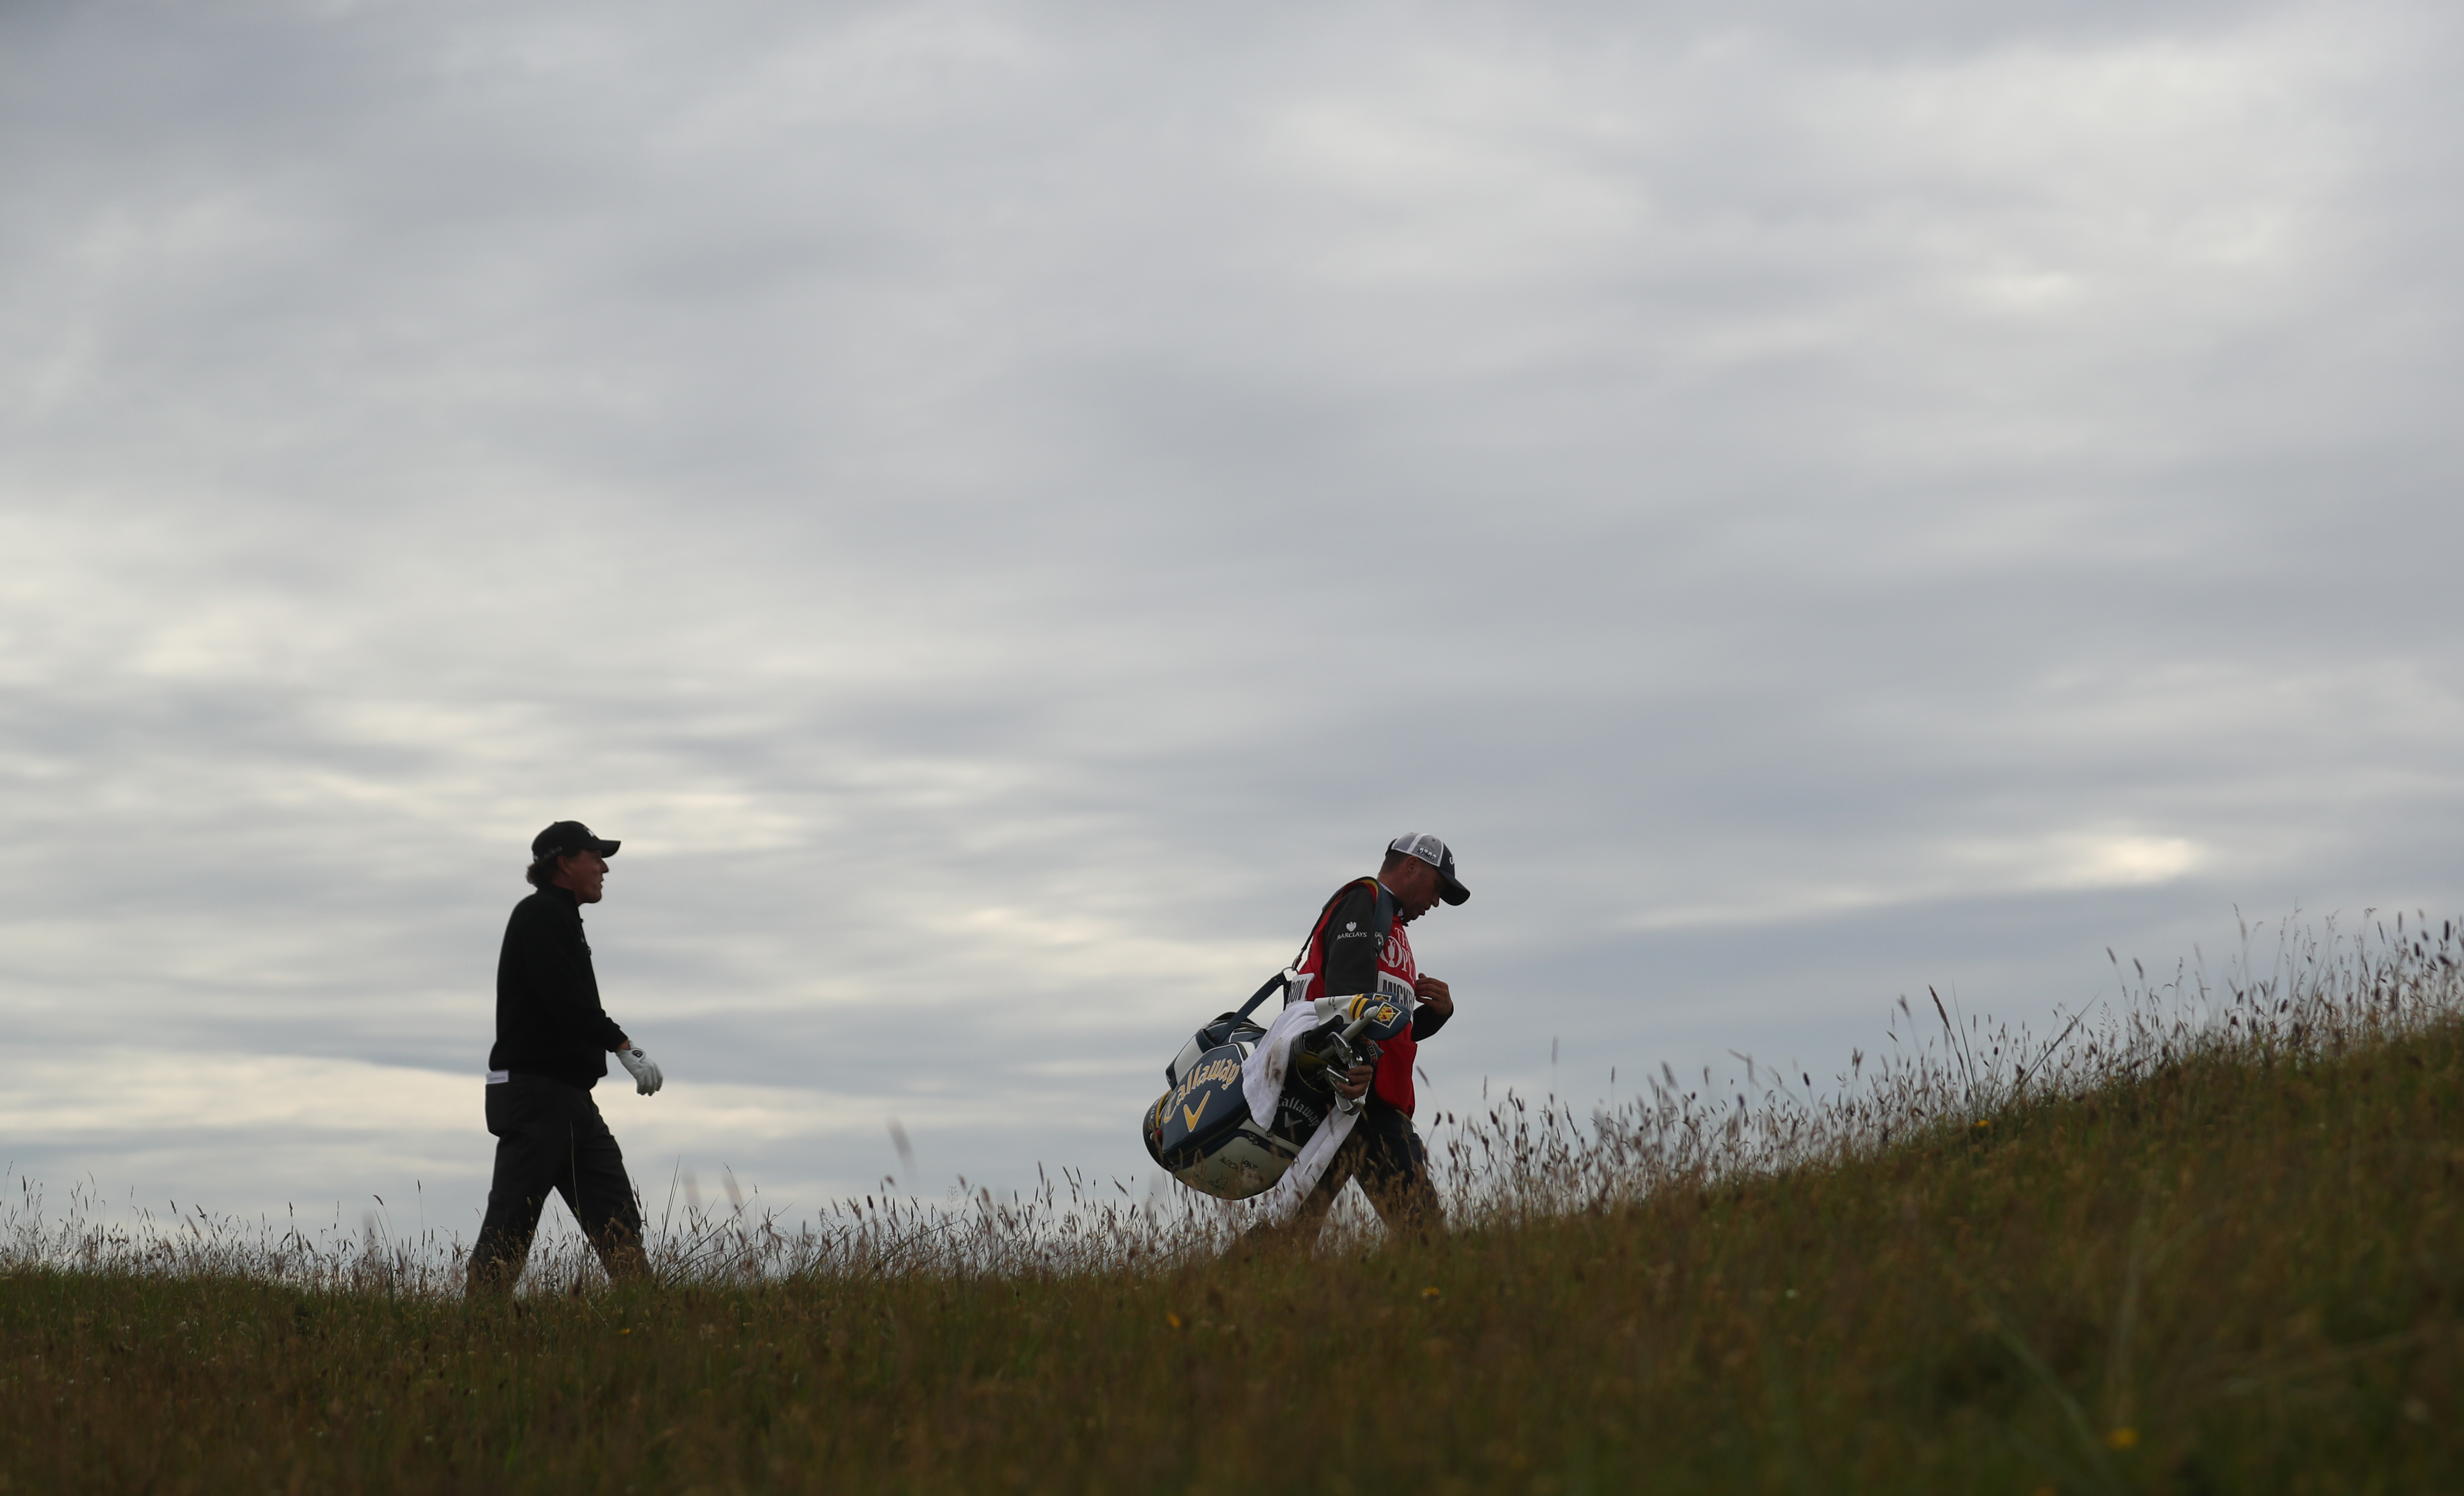 Phil Mickelson of the United States walks the 13th fairway during the final round of the British Open Golf Championship at the Royal Troon Golf Club in Troon, Scotland, Sunday, July 17, 2016. (AP Photo/Peter Morrison)